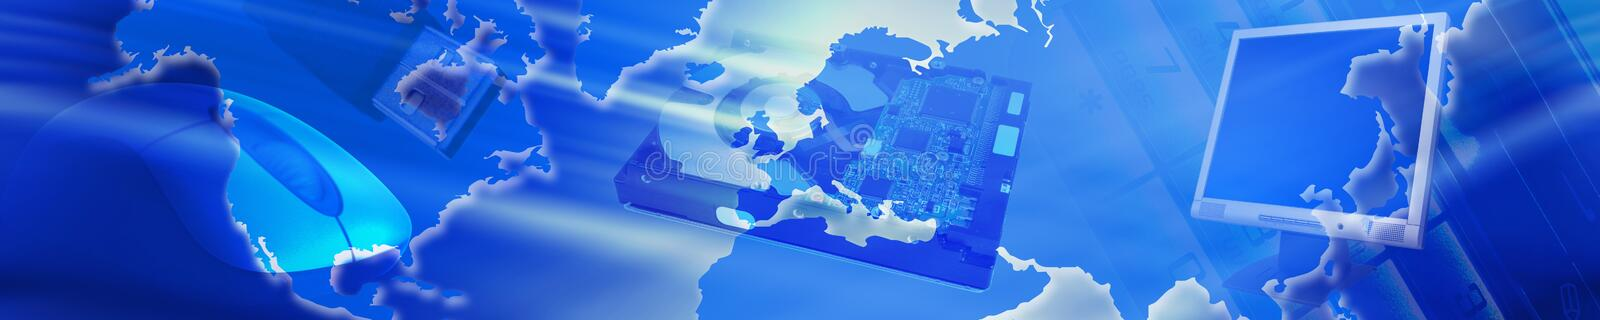 Technology banner stock illustration